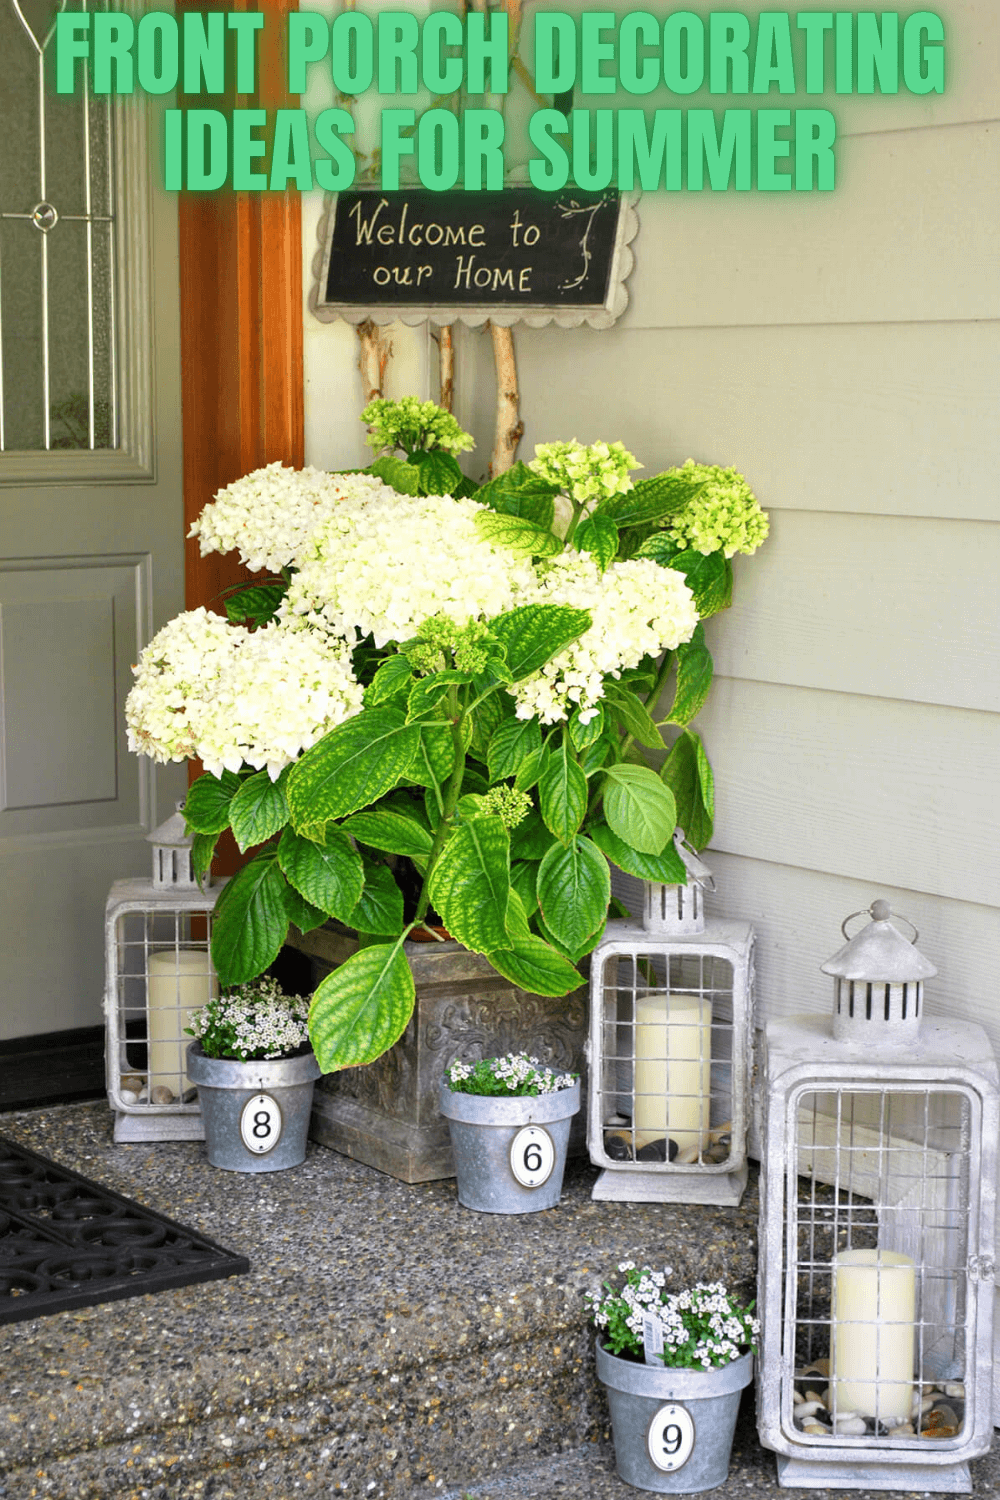 FRONT PORCH DECORATING IDEAS FOR SUMMER